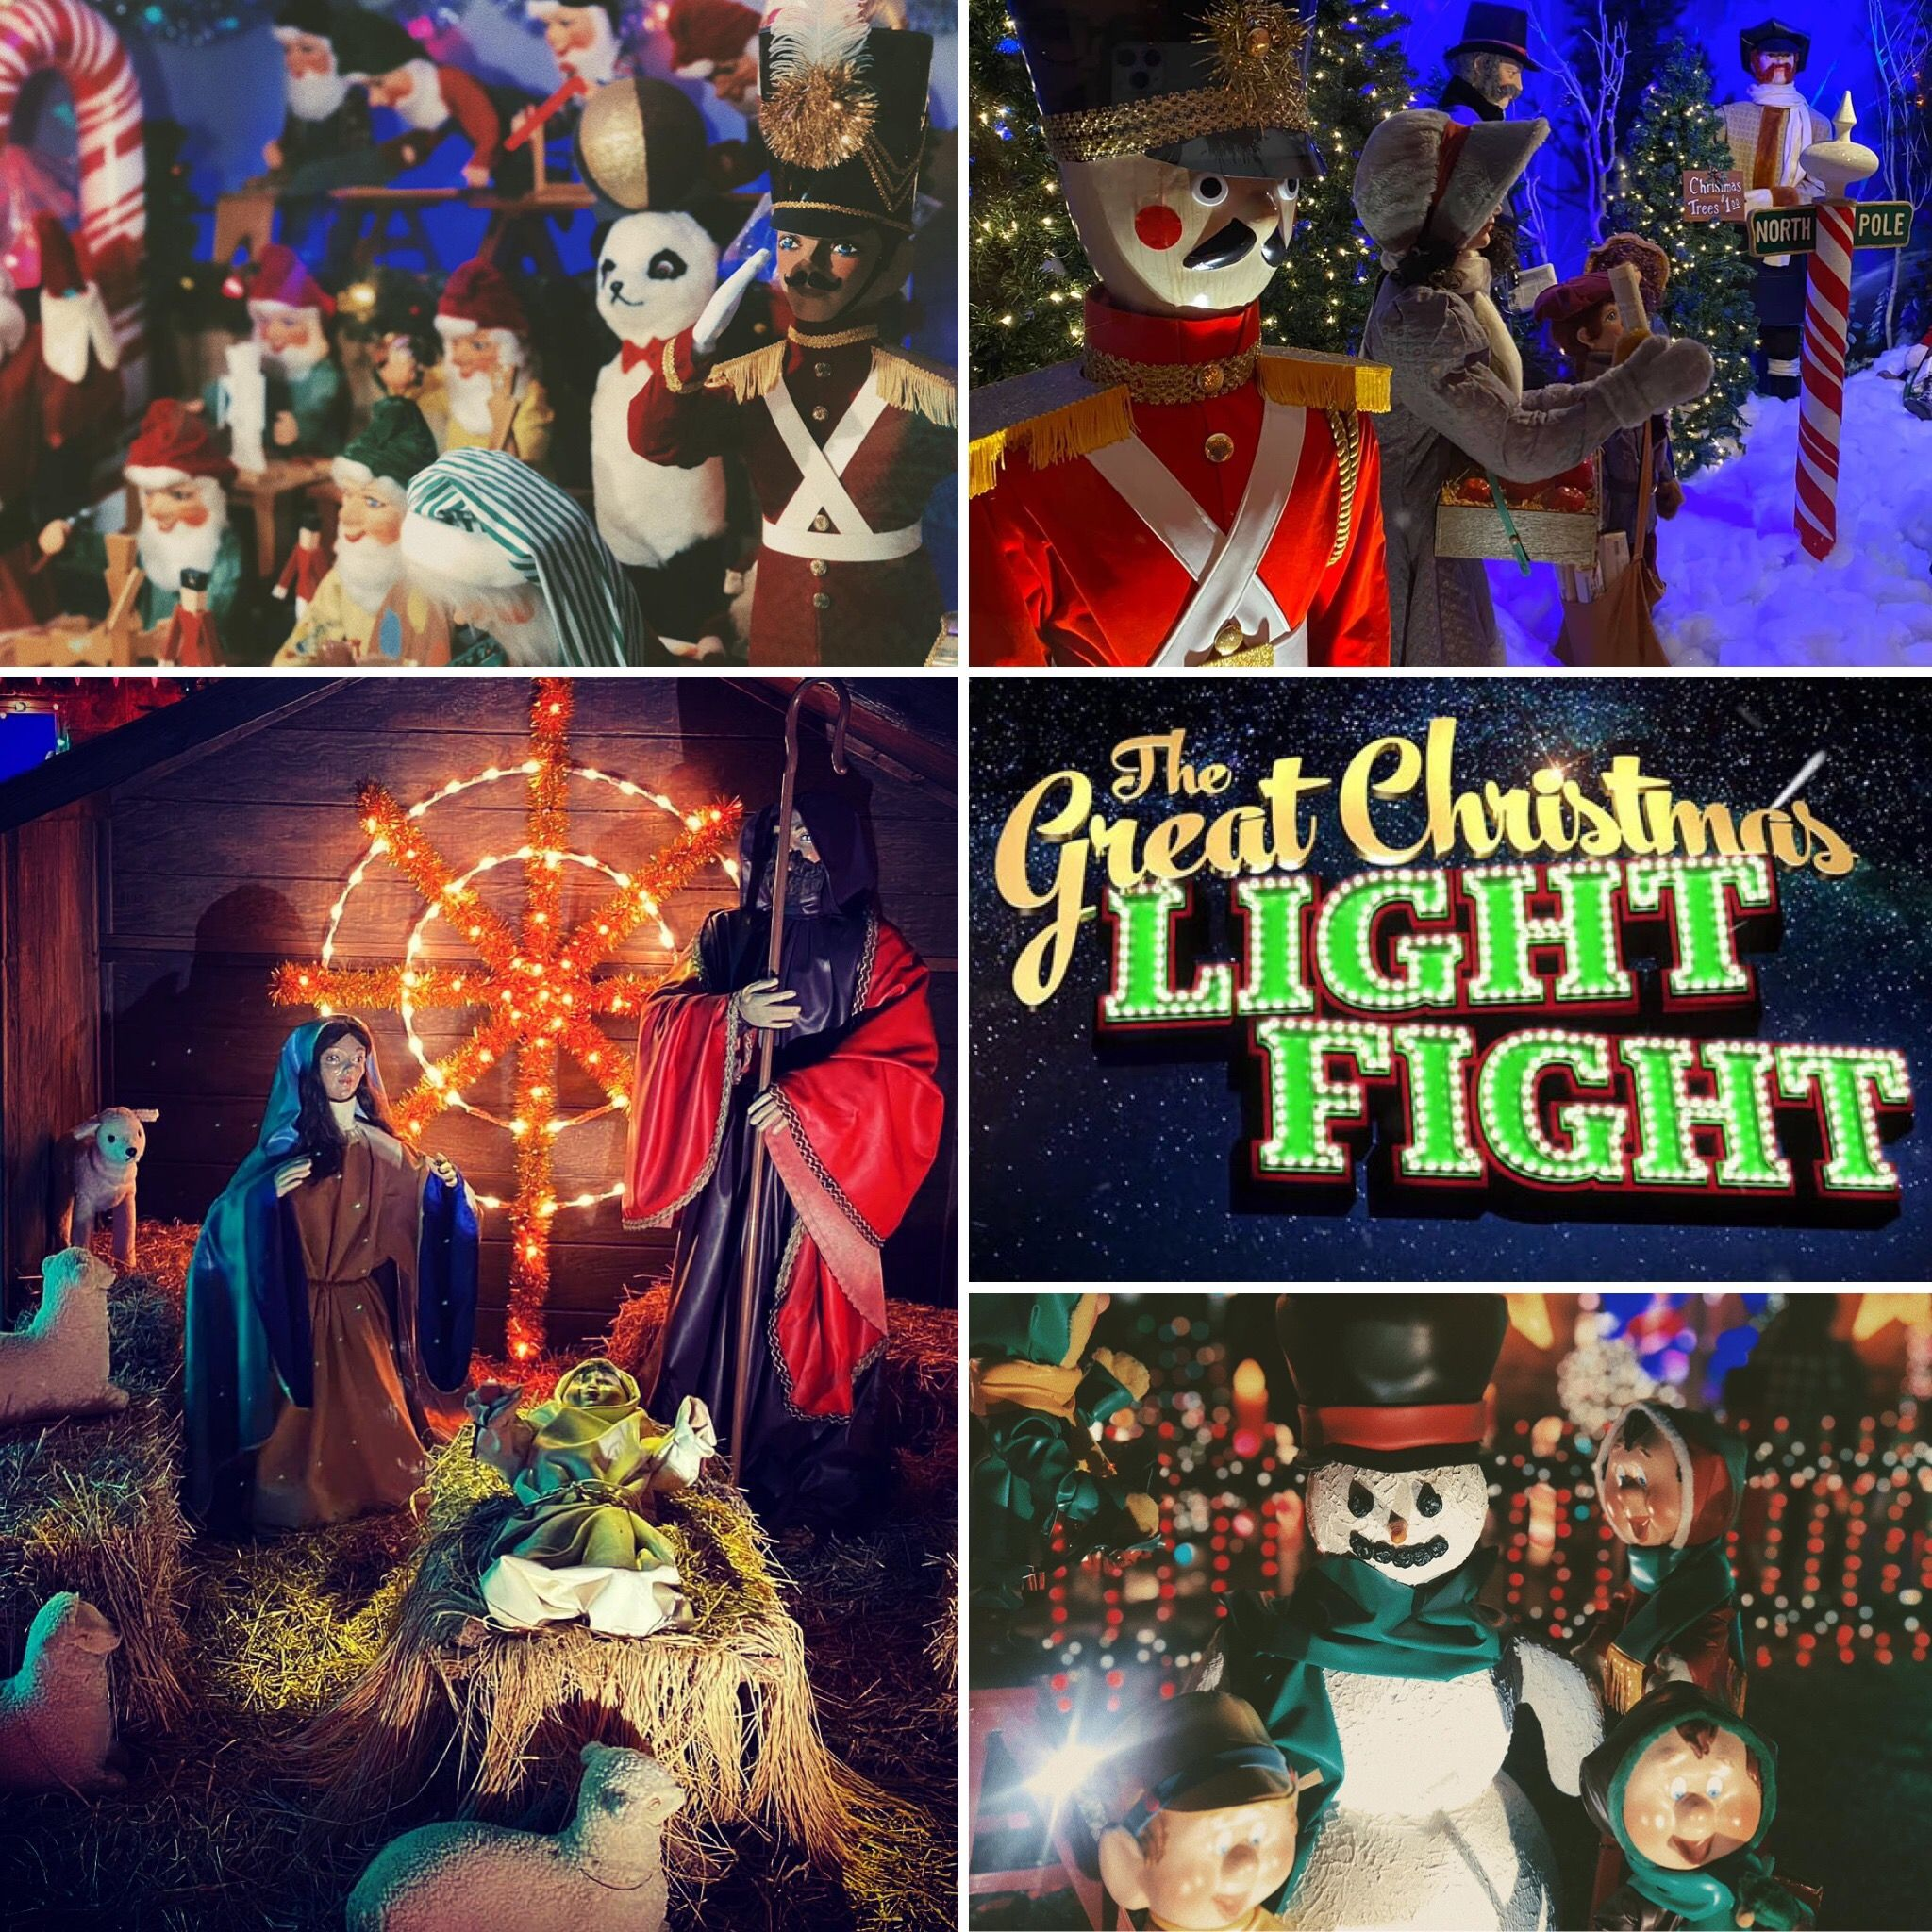 When Does The Christmas Light Fight Start 2020 Watch Ben Sumner of Jenks Oklahoma on The Great Christmas Light